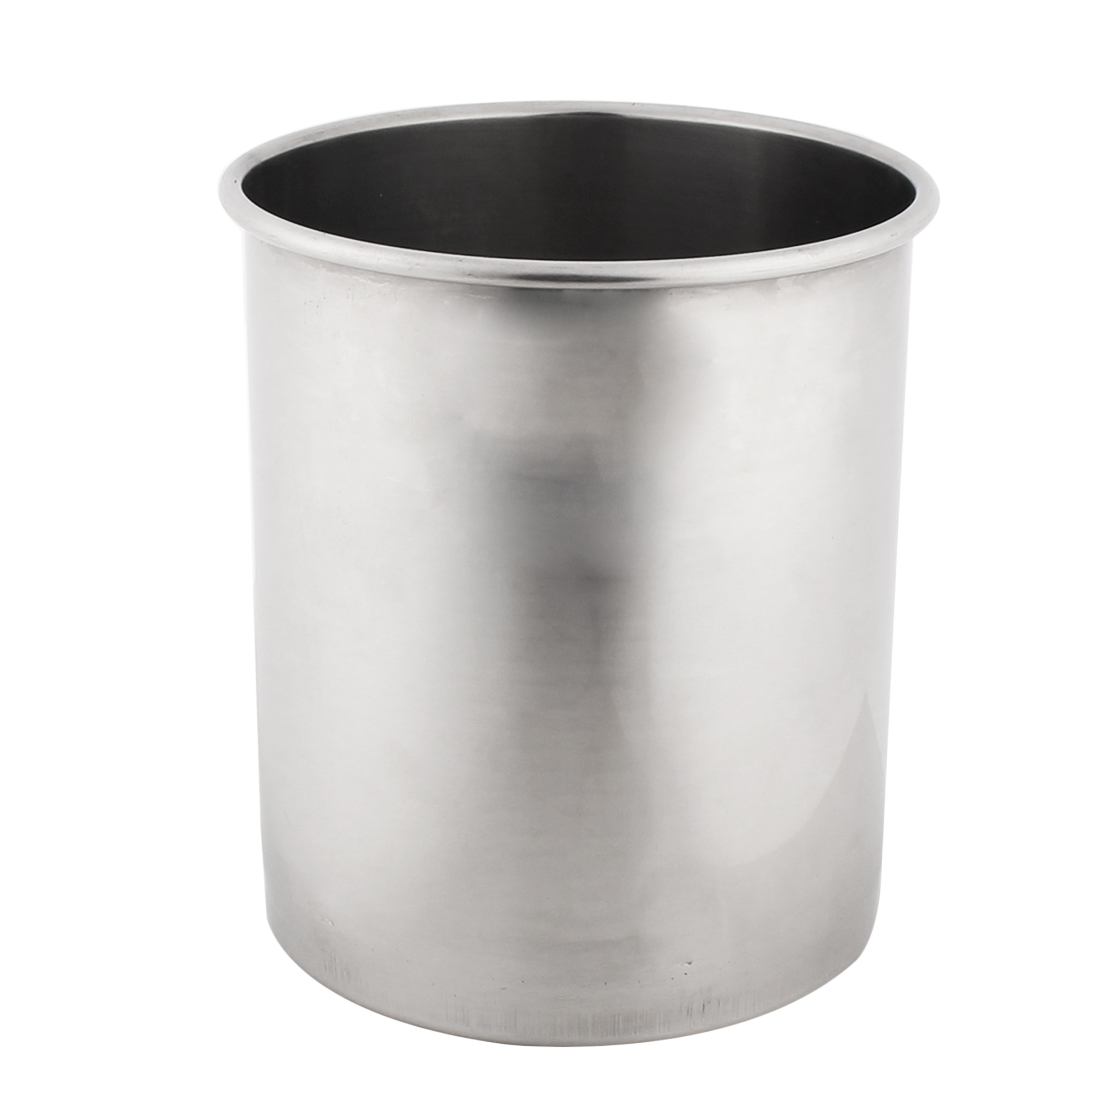 3.3L Capacity Kitchen Bar Stainless Steel Champagne Wine Cooler Ice Bucket by Unique-Bargains